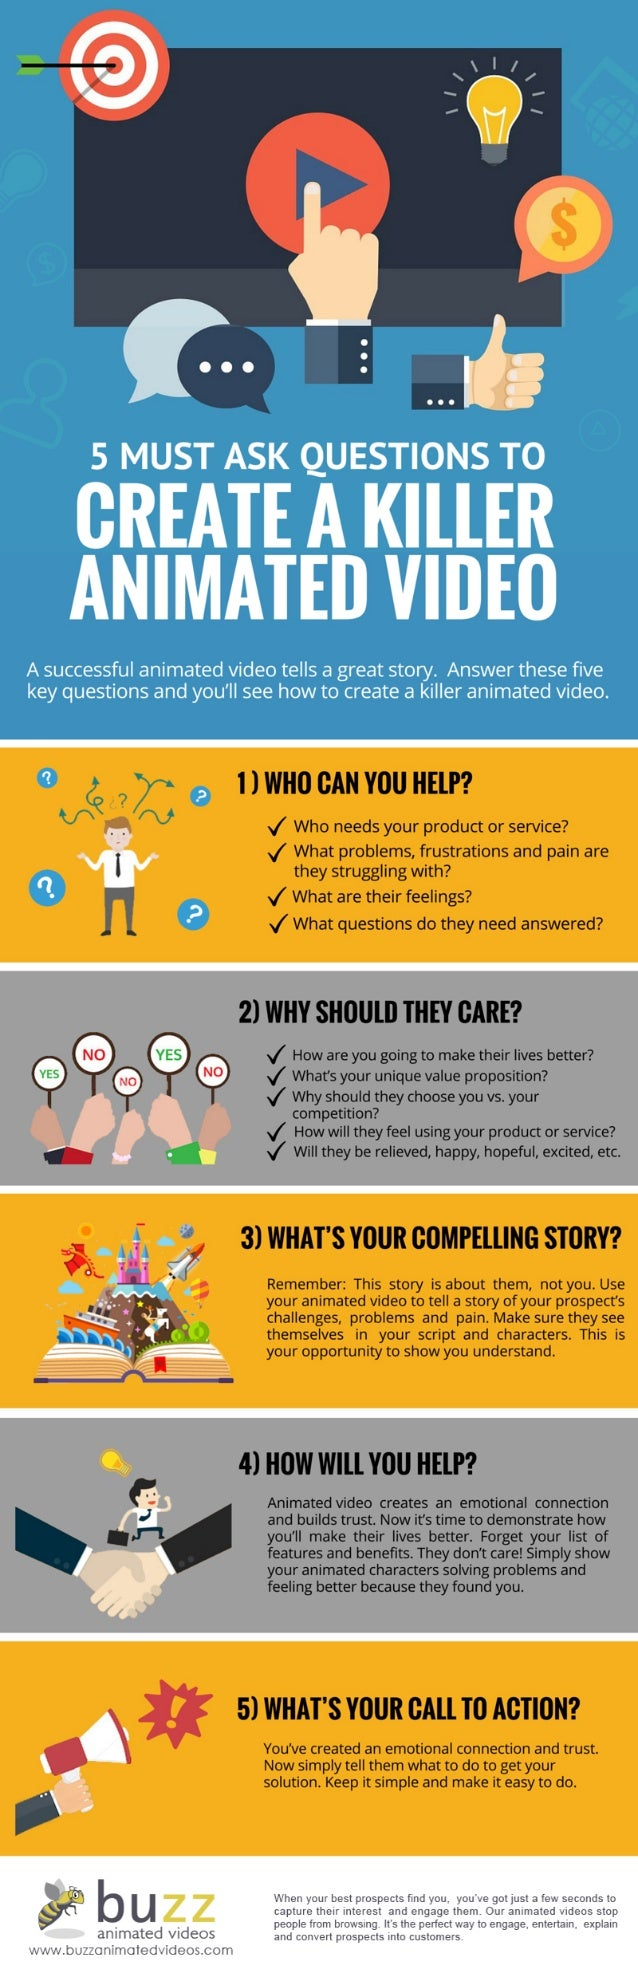 5 Must Ask Questions to Create a Killer Animated Video